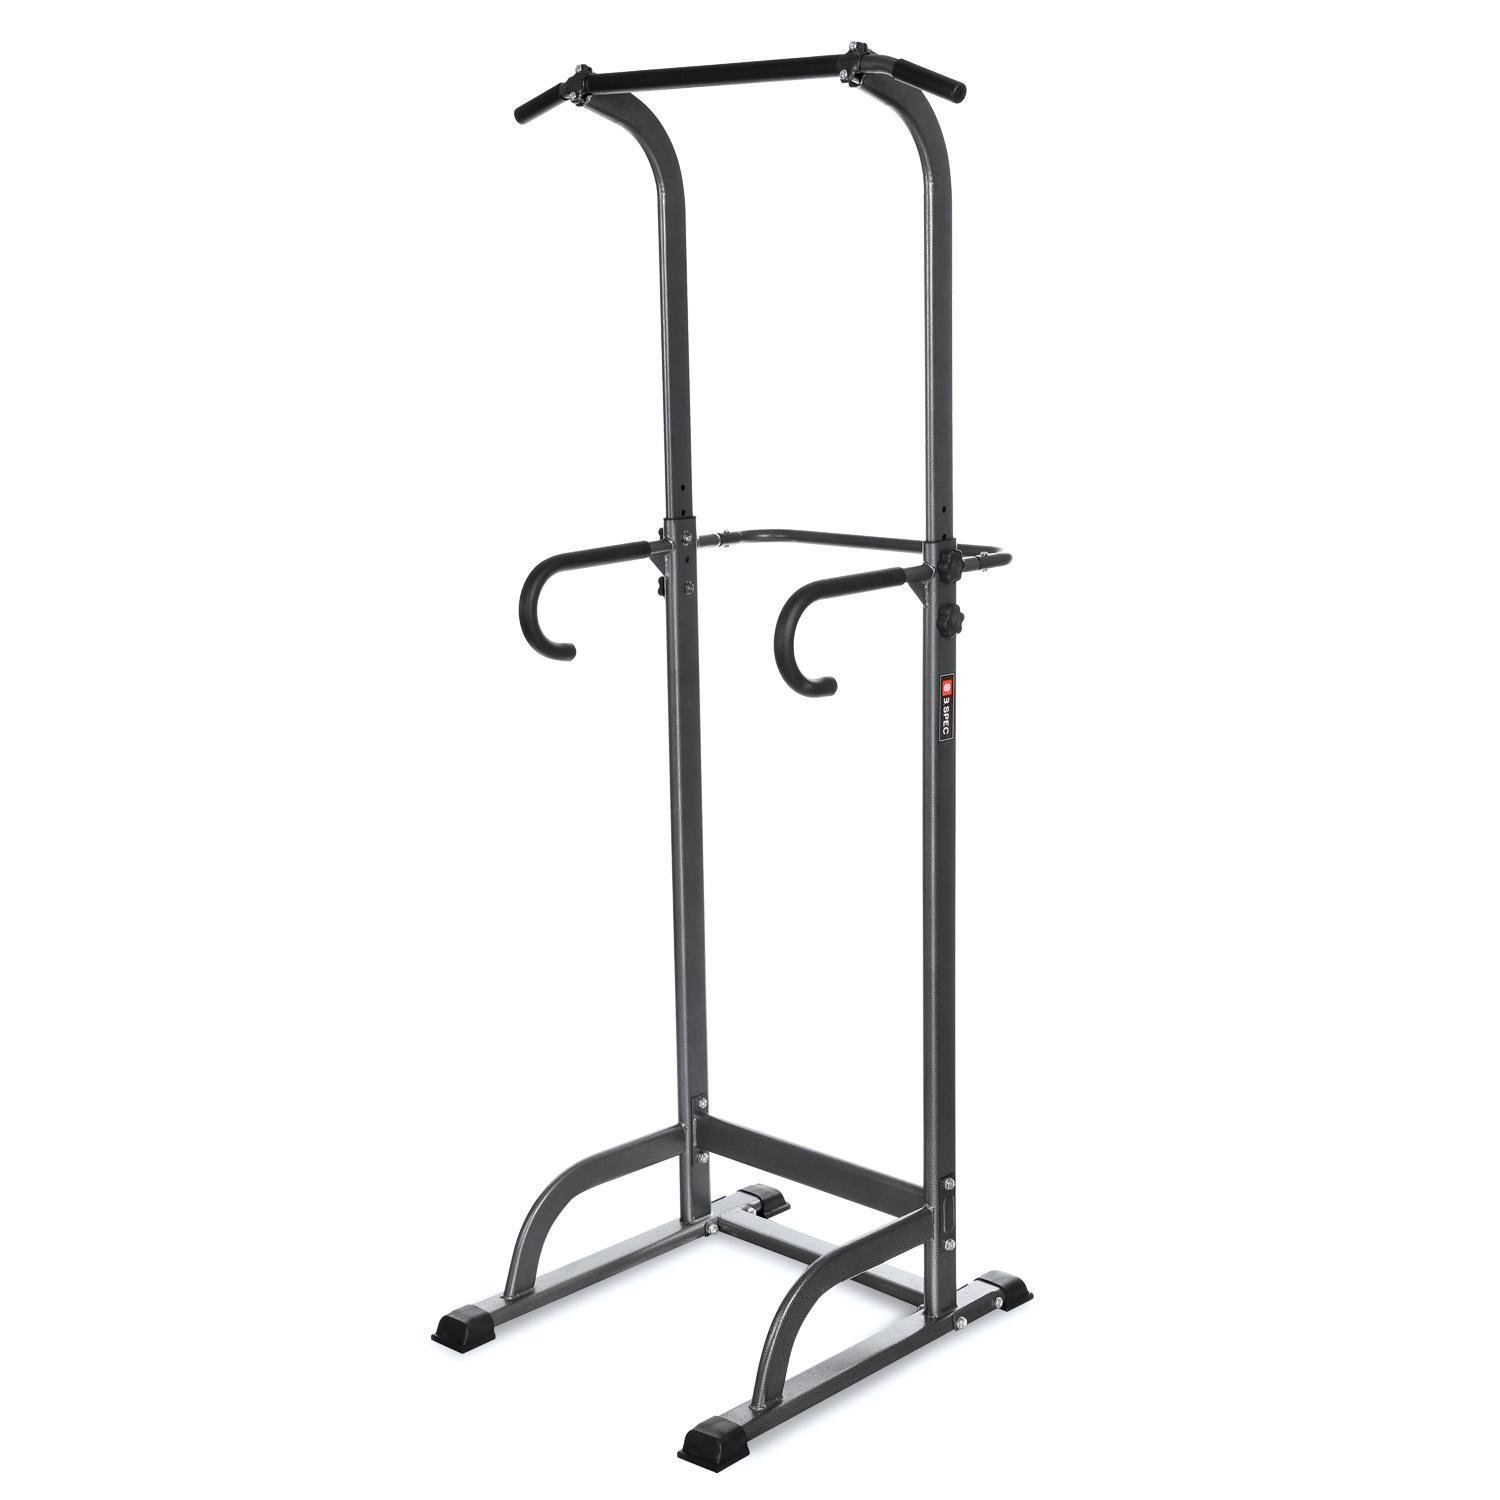 Power Tower Stand,Pagacat Adjustable Heavy Duty Pull Push Up Dip Station Exercise Equipment for Home Gym[US Stock]